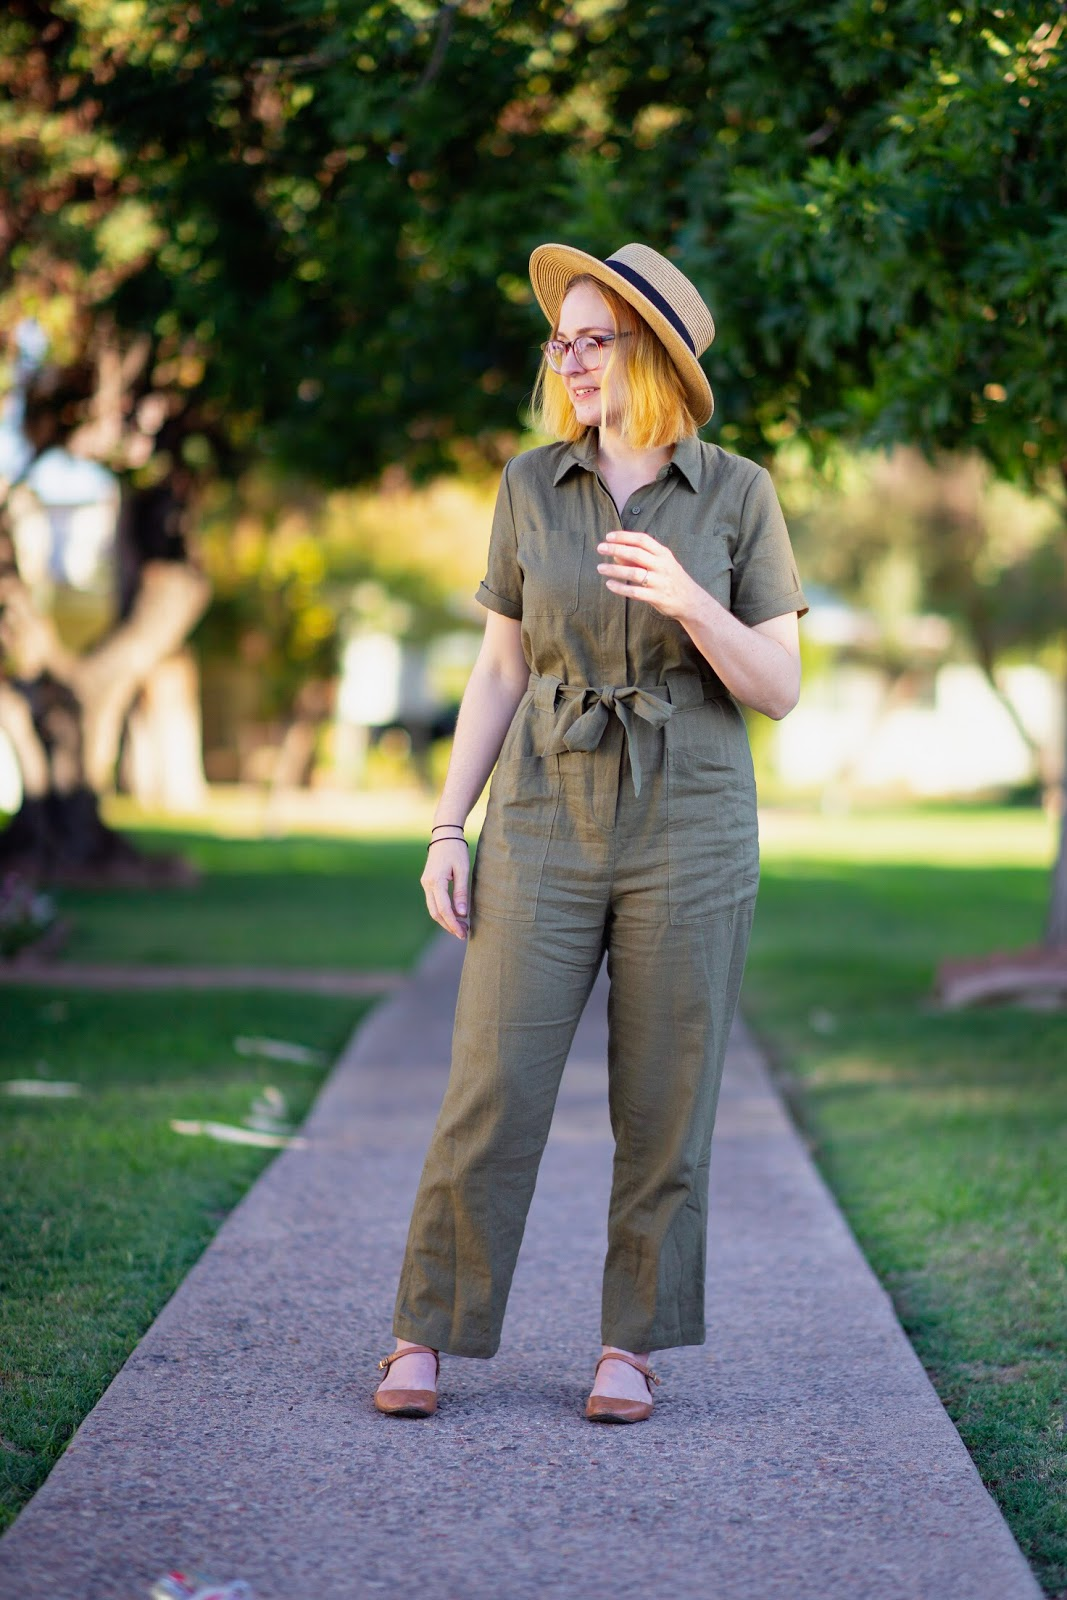 Target - #targetstyle - army green coveralls, boat hat - Phoenix Blogger littleladylittlecity.com